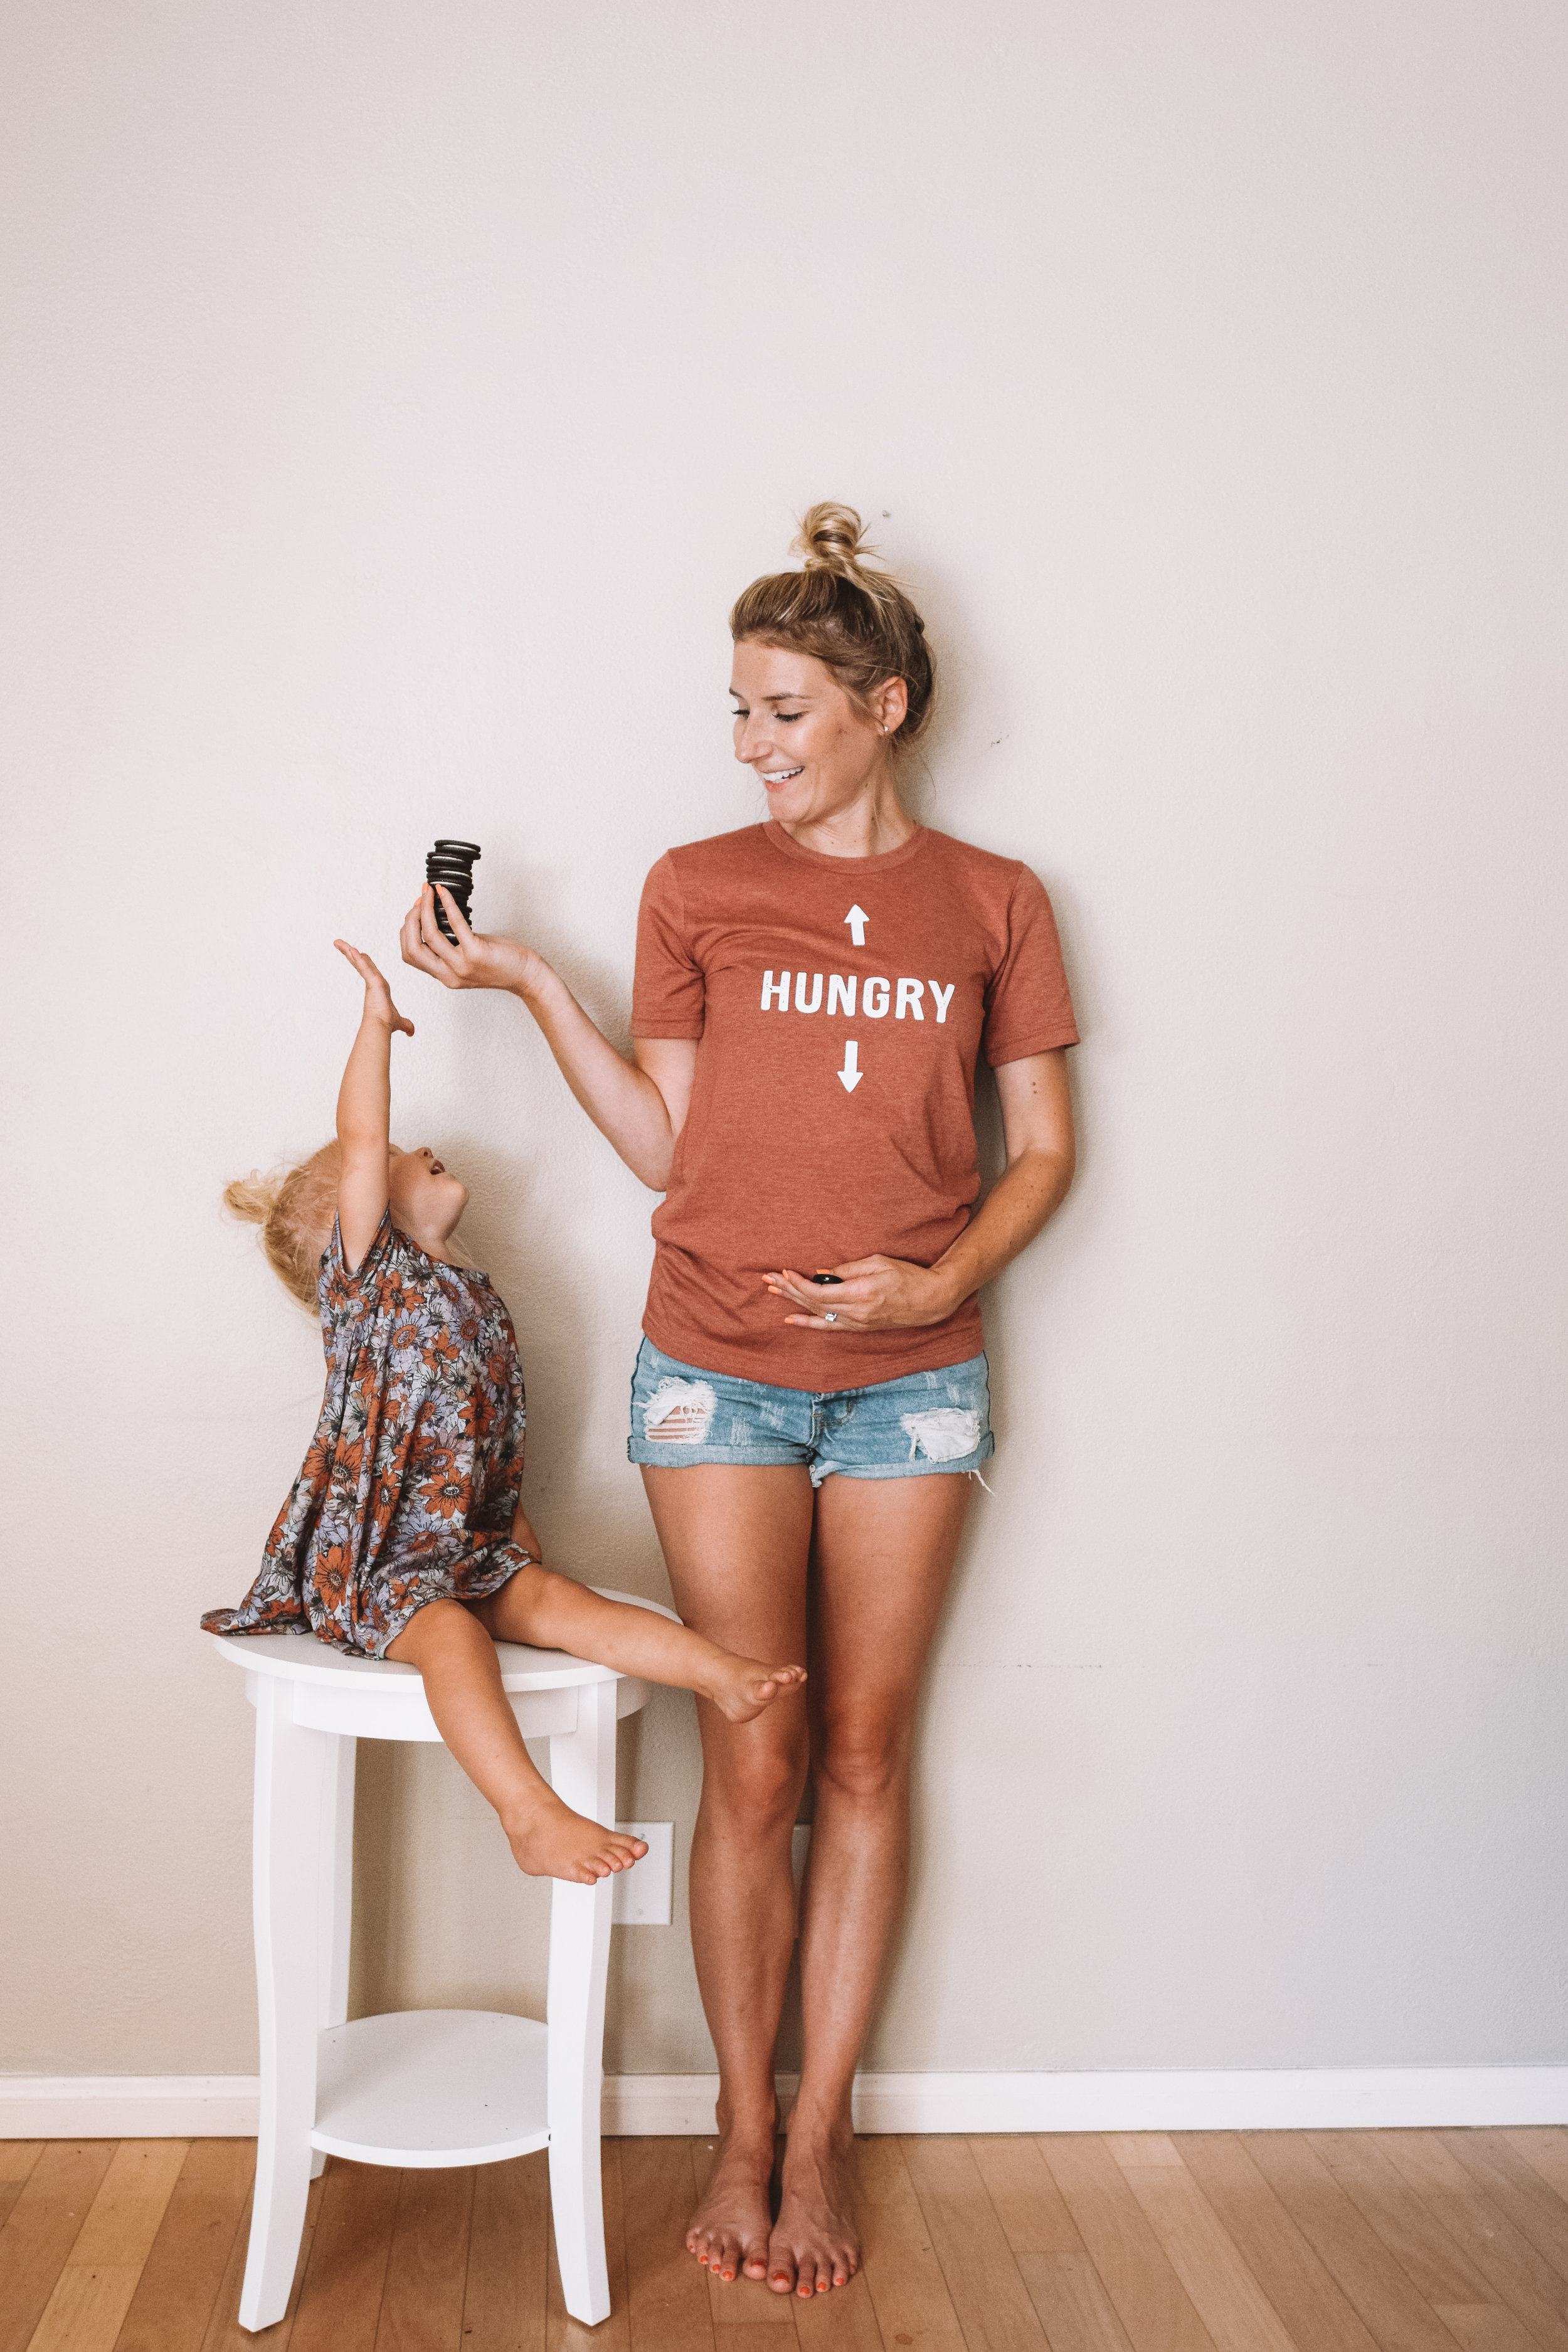 Pregnant Belly Week 9 | Funny Pregnancy Shirts